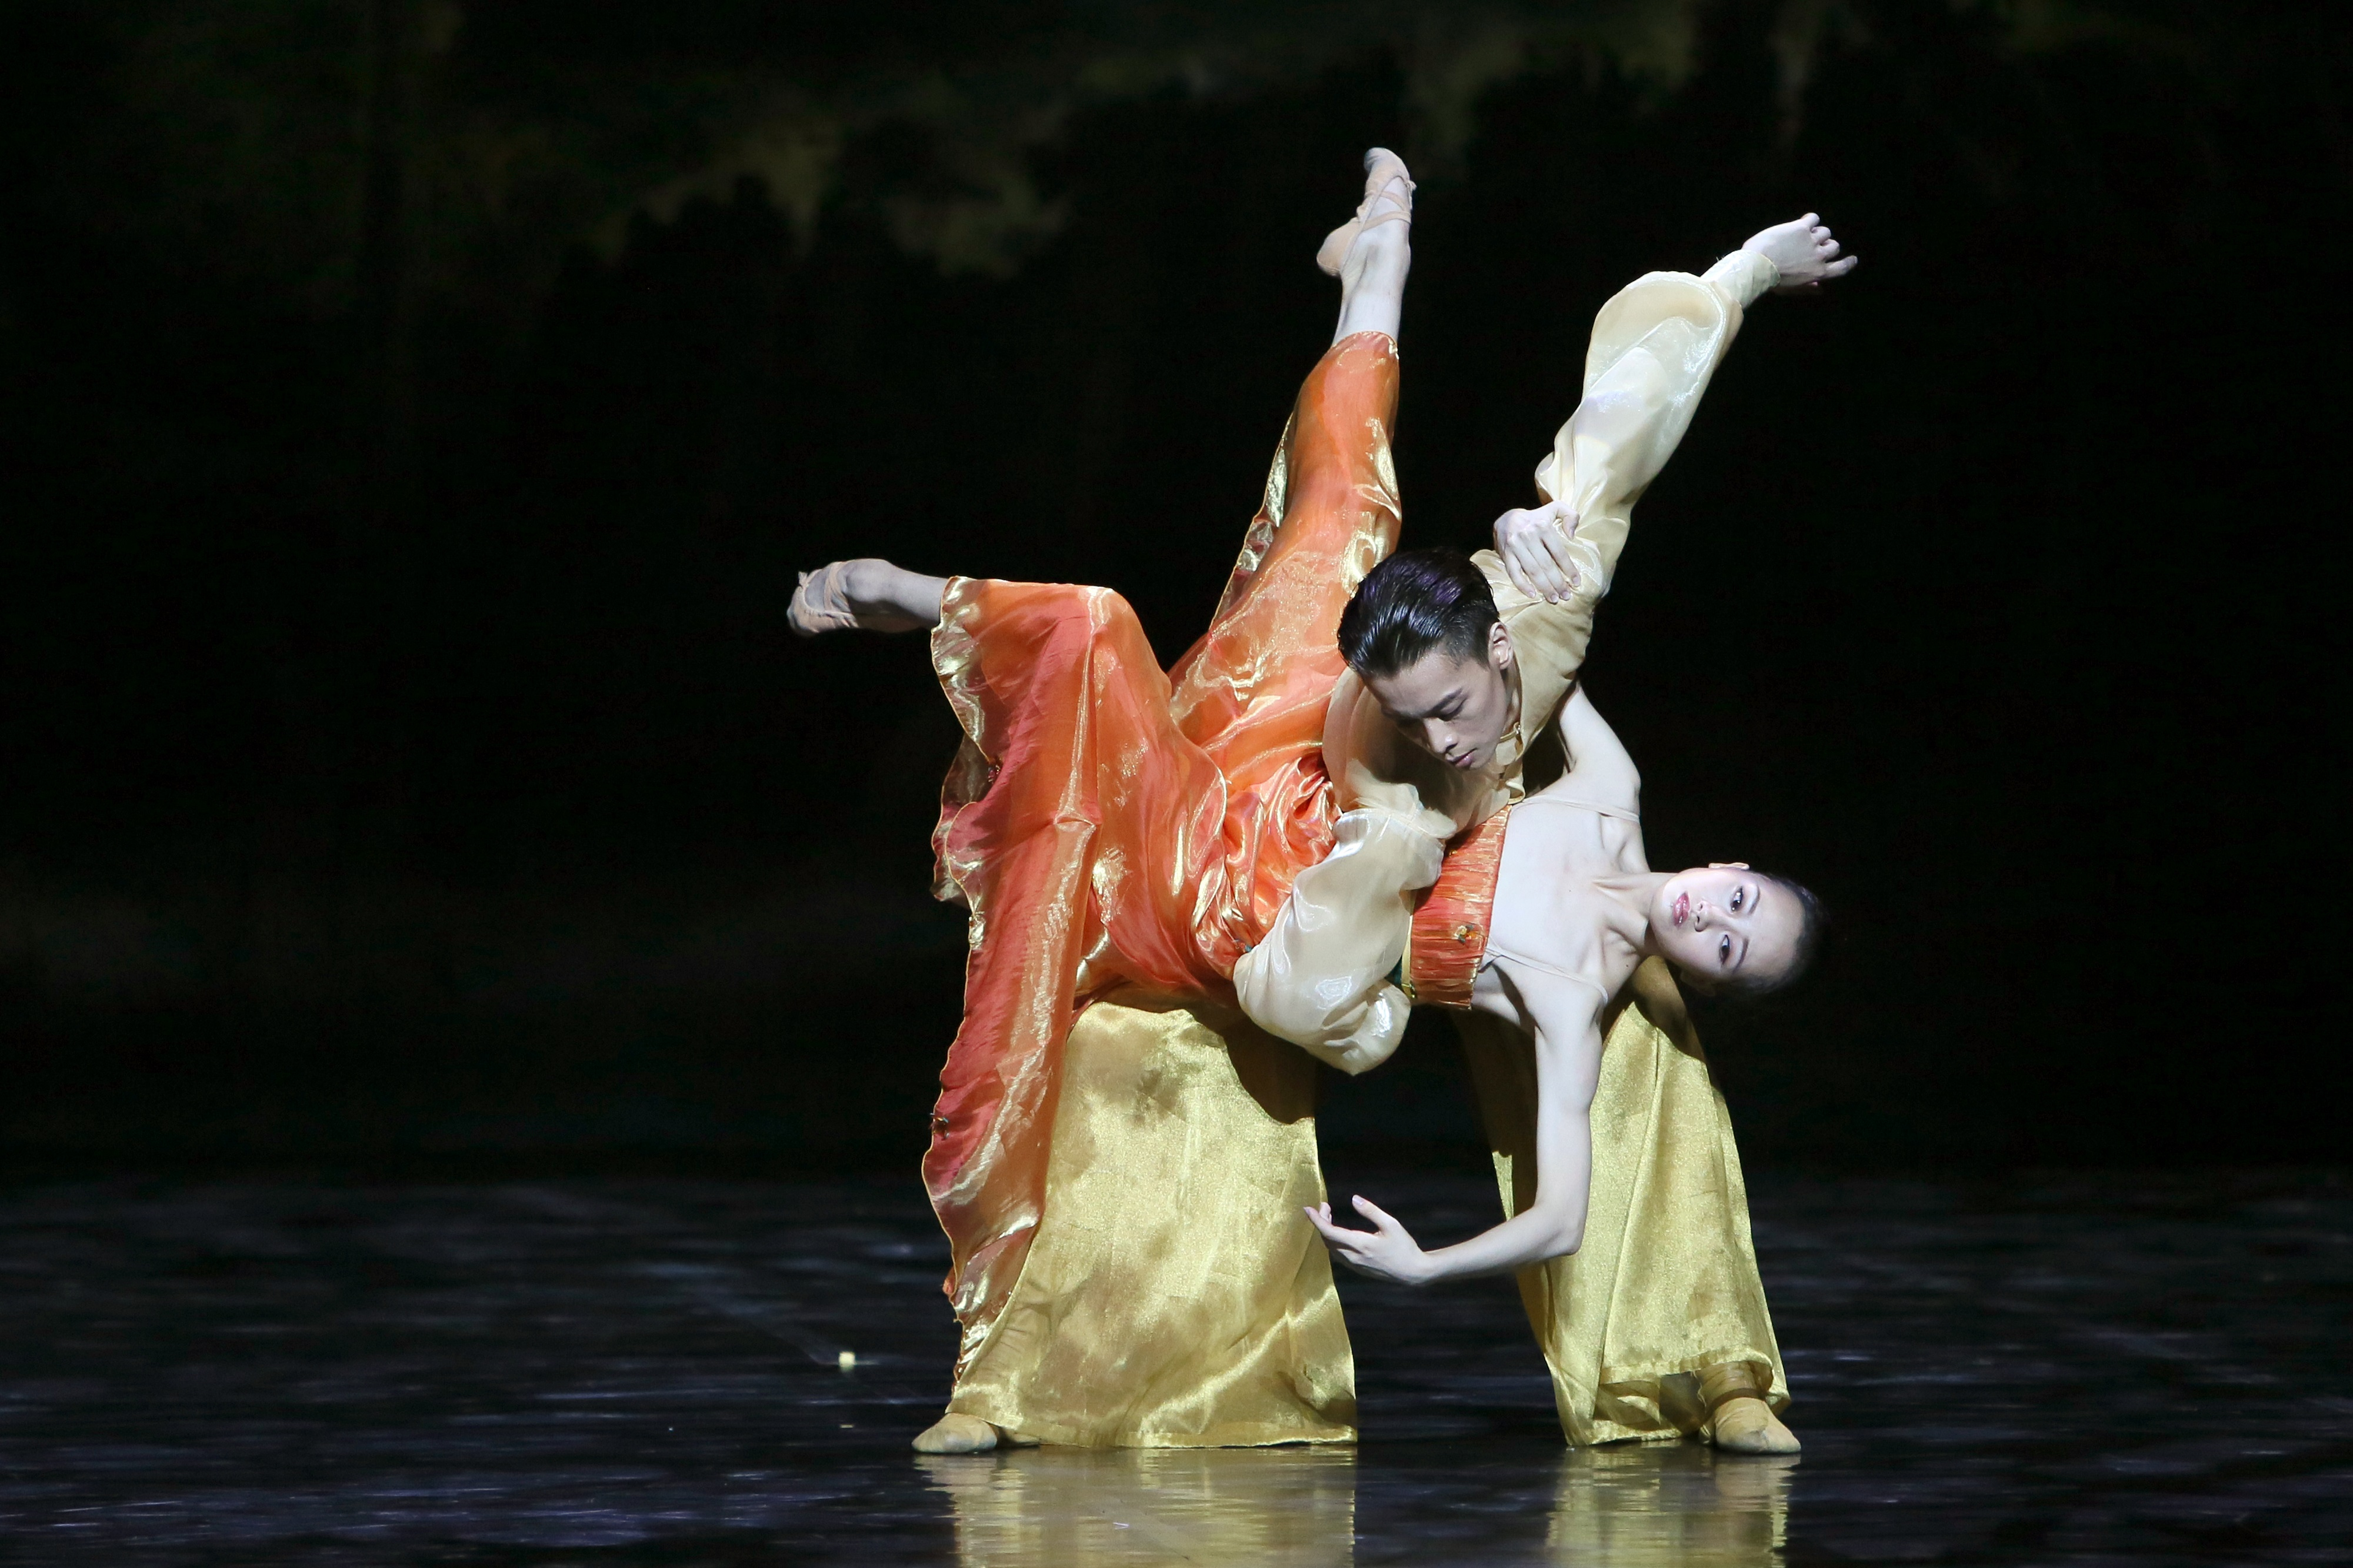 Shanghai Ballet in Echoes of Eternity. Dancers Wu Husheng as the Emperor and Qi Bingxue as Lady Yang.